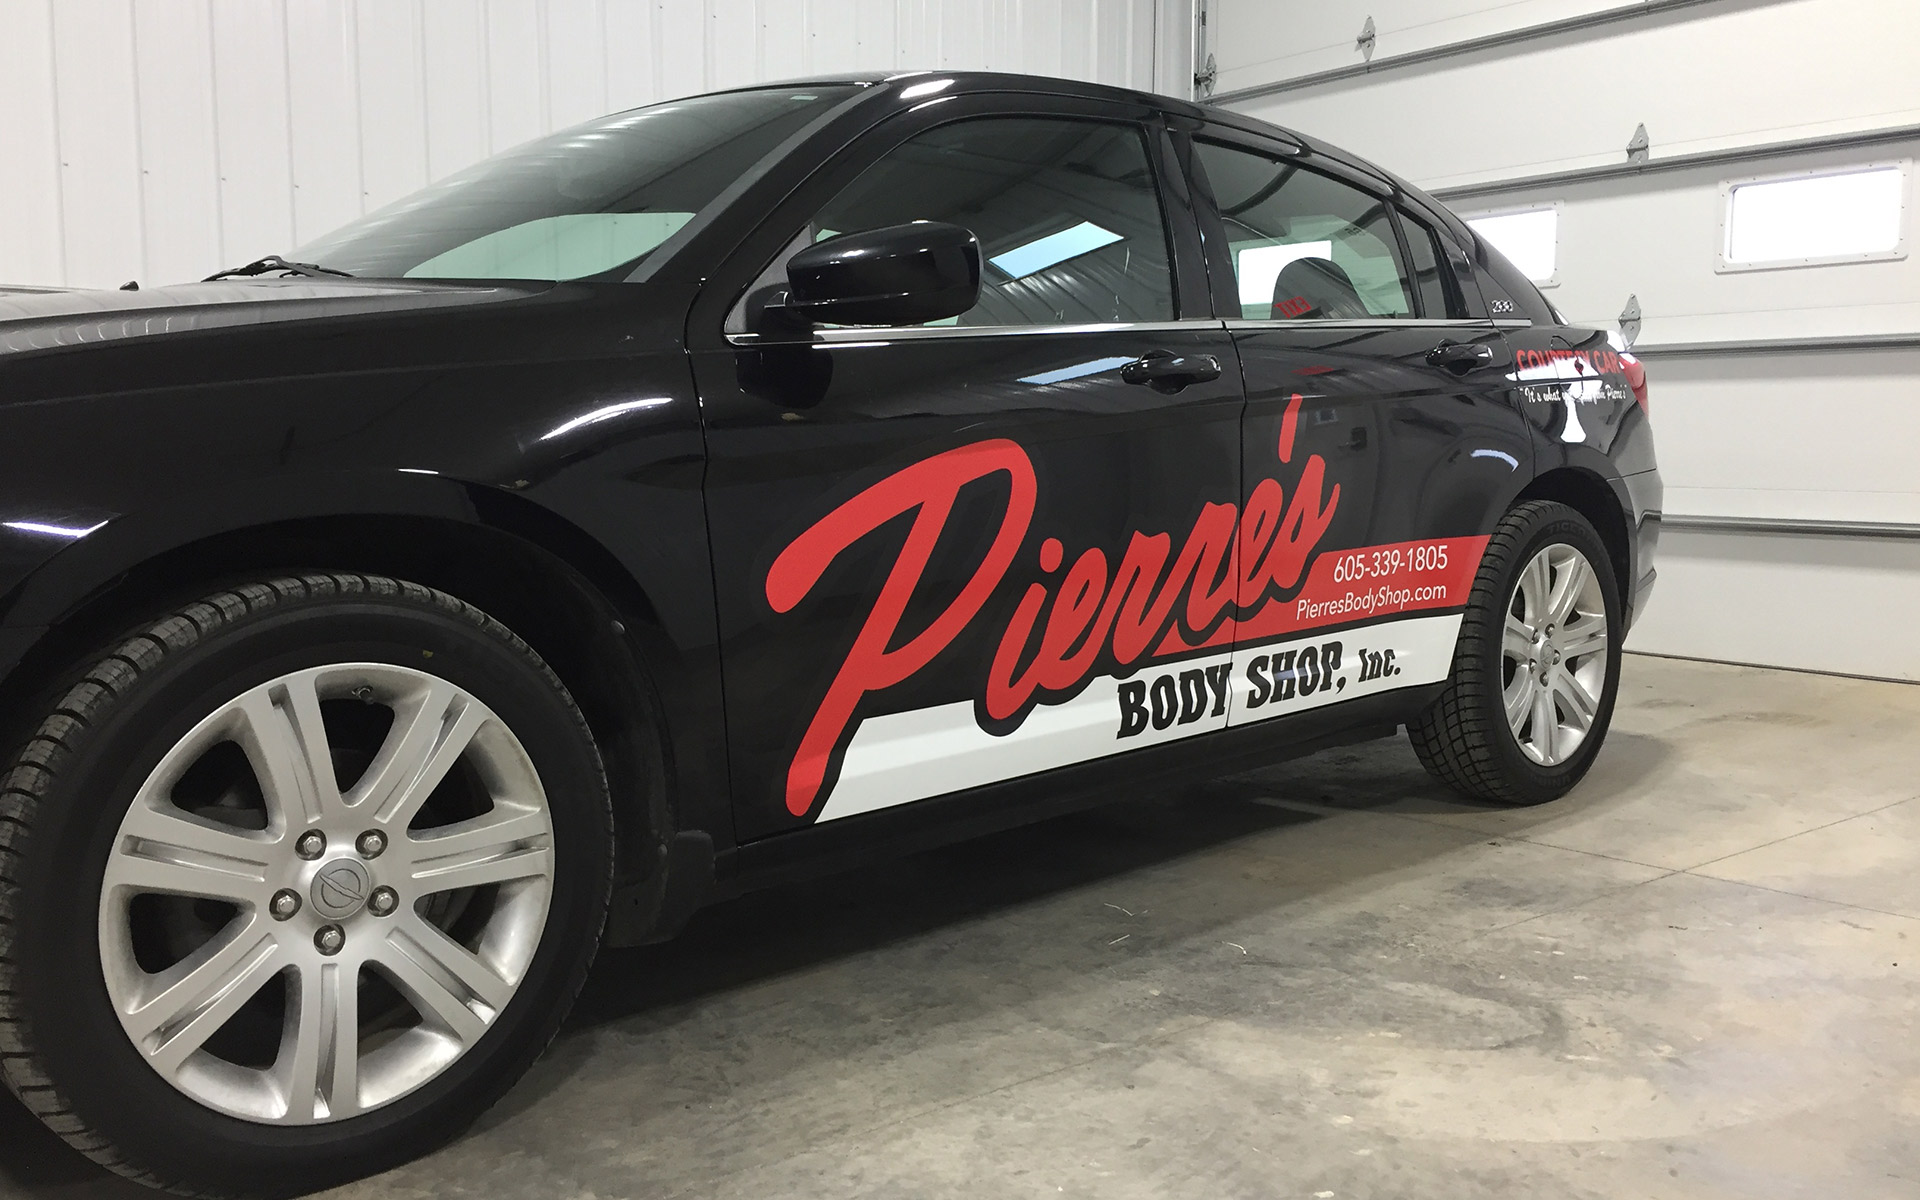 Vehicle Wrap - Pierre's Body Shop in Sioux Falls